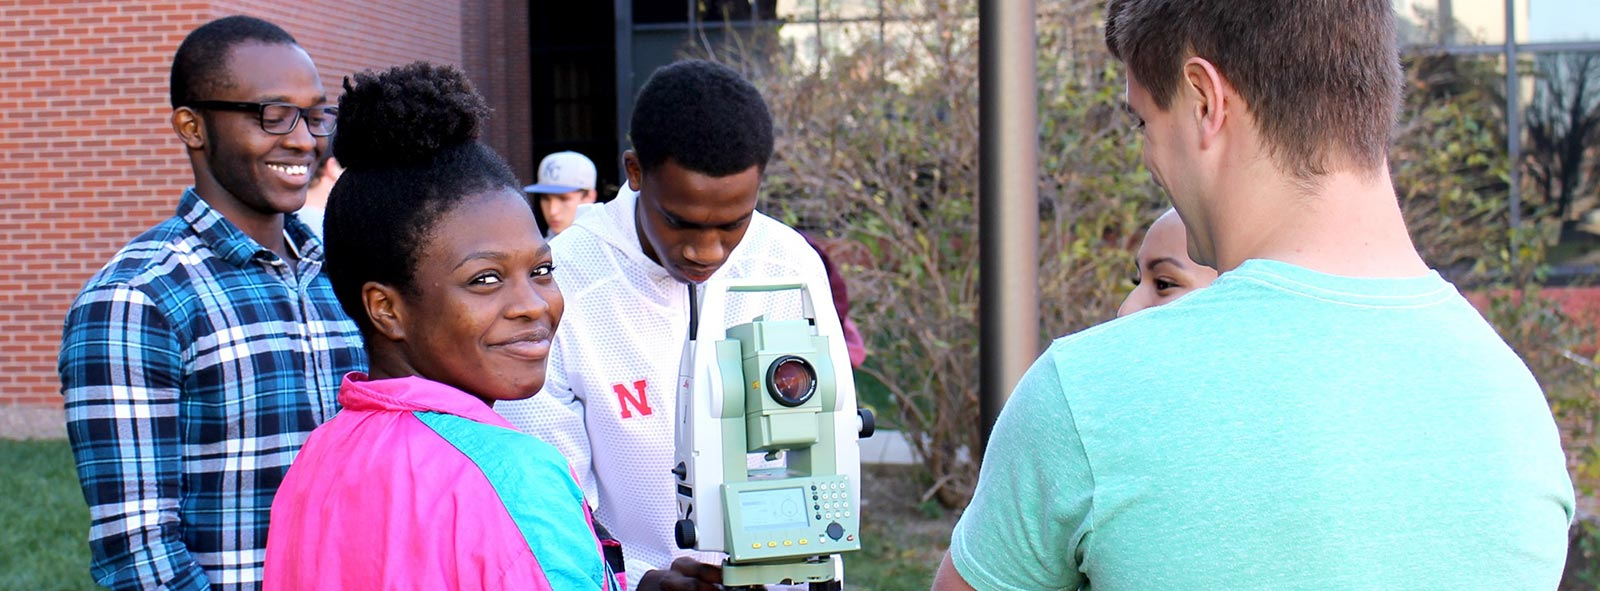 Four engineering students use a scope to survey outside the engineering complex. One student is facing the camera and smiling and another is looking into the scope.